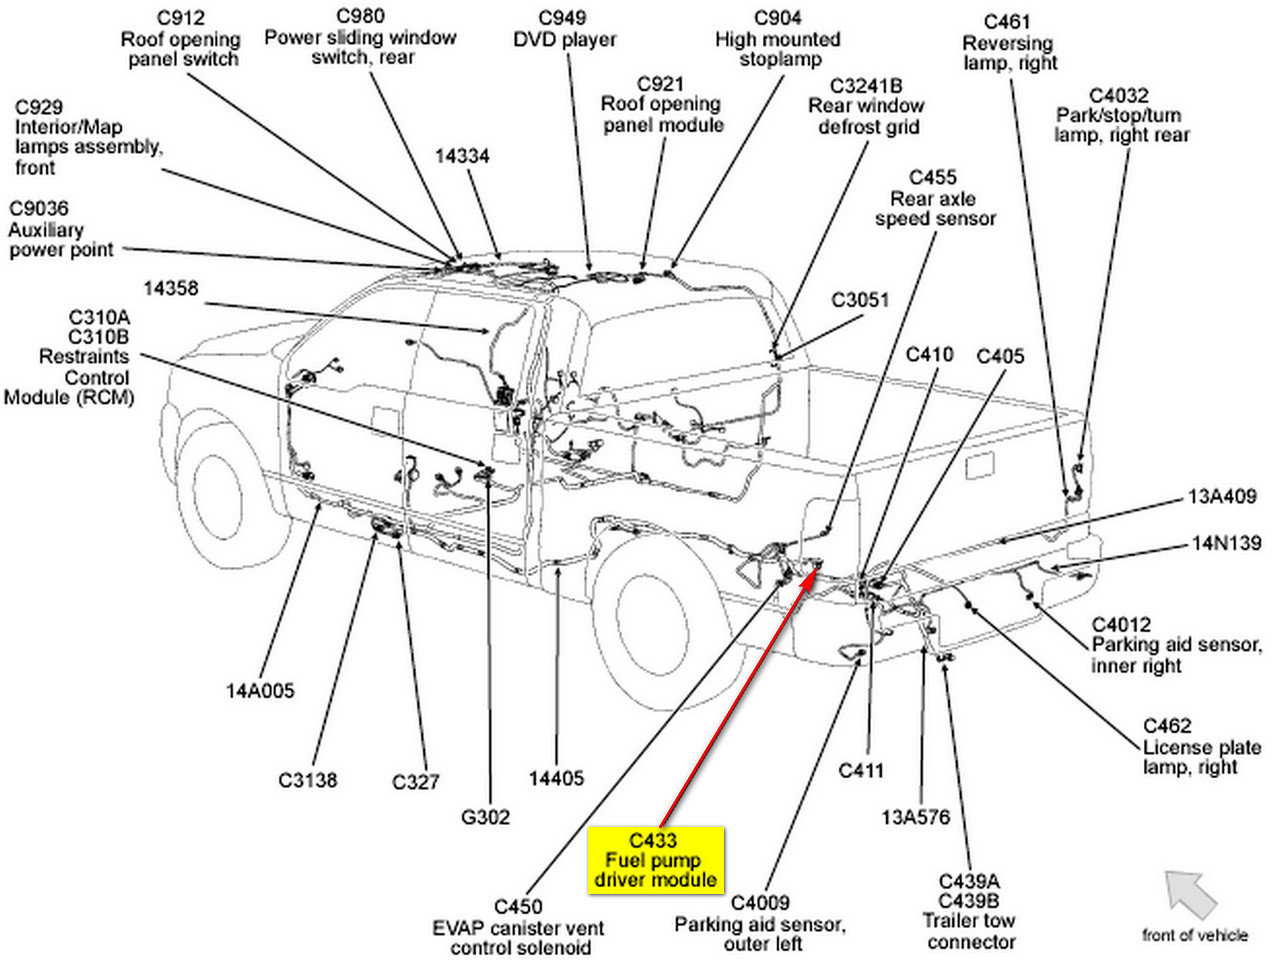 Ford F 150 Fuel Pump Location On 97 Ford Explorer Fuel Filter ...  Ford Explorer Fuel Pump Wiring Diagram on ford f-250 fuel pump wiring, ford fuel pump connector wiring, 1994 ford ranger wiring diagram, 90 ford ranger wiring diagram, ford f 150 fuel diagrams, fuel sending unit wiring diagram,